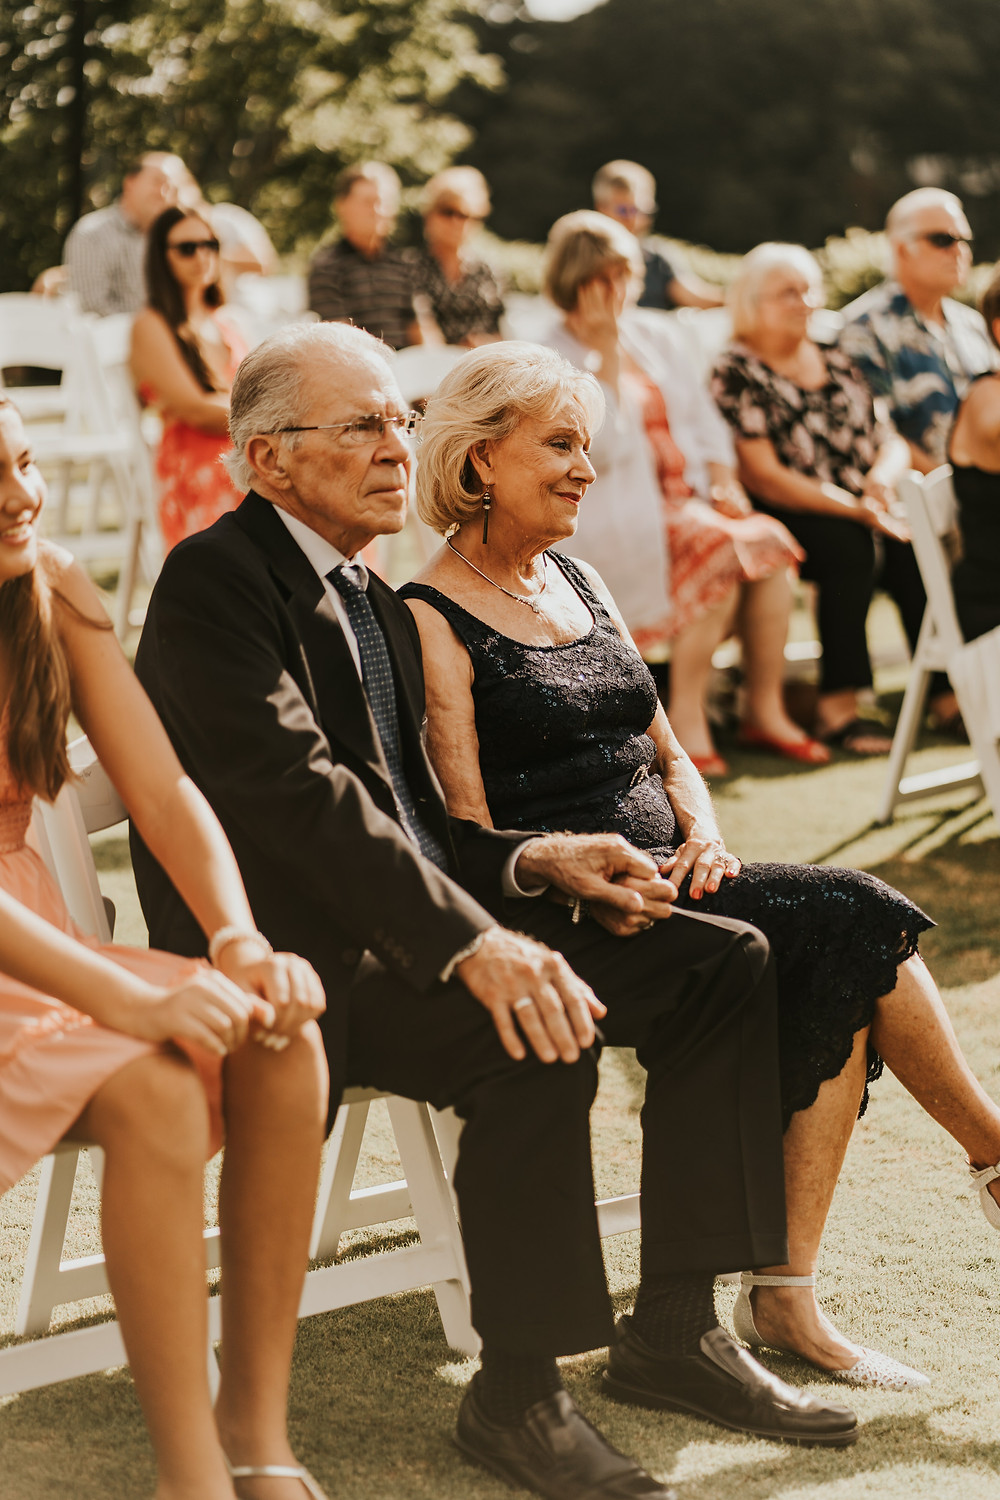 Parents of the groom watching their son's wedding ceremony